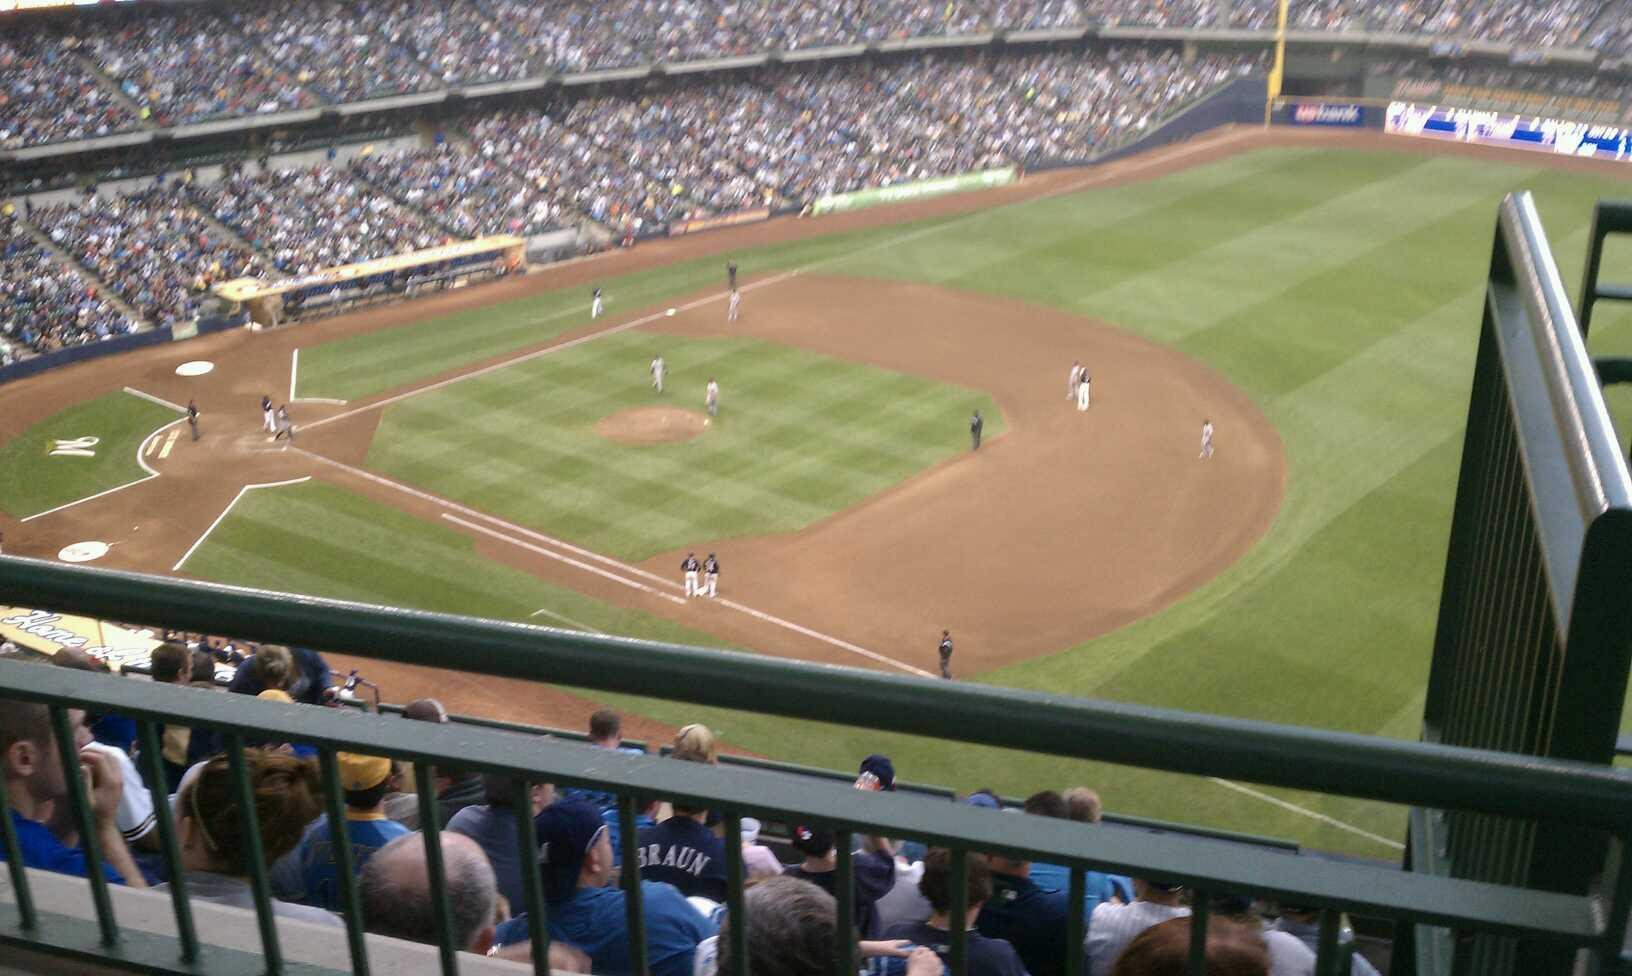 Miller park Section 411 Row 9 Seat 15